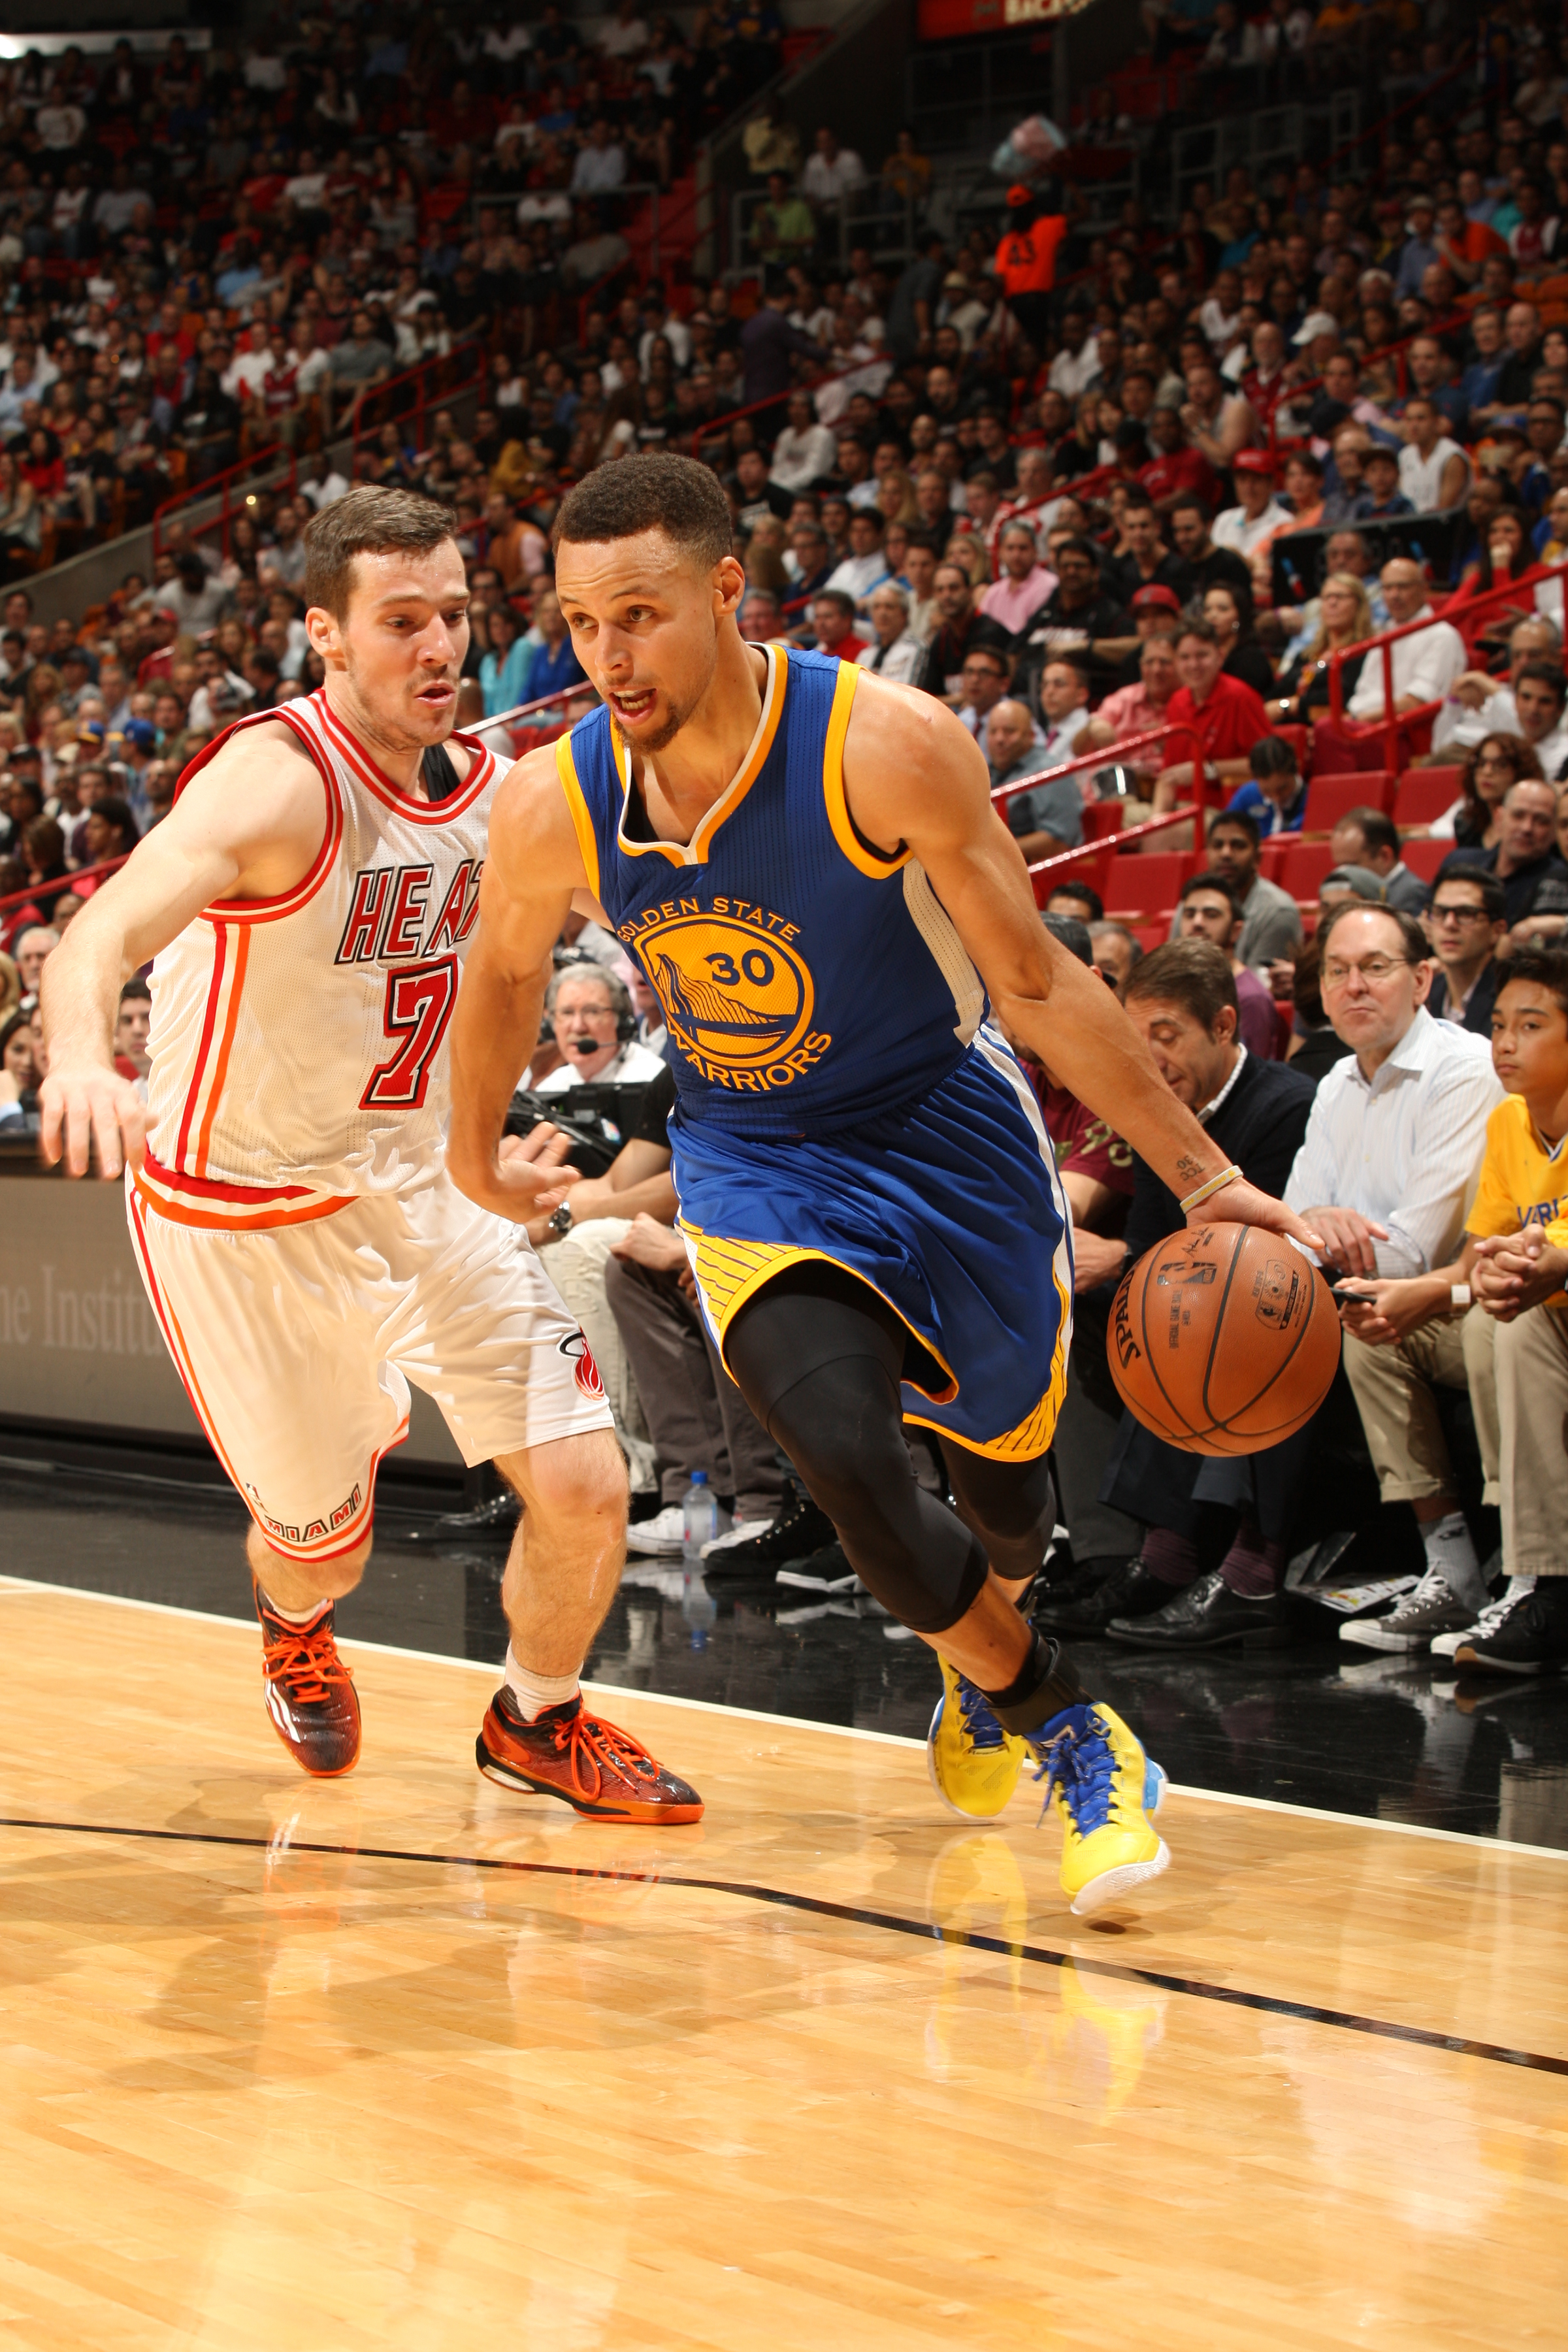 MIAMI, FL - FEBRUARY 24:  Stephen Curry #30 of the Golden State Warriors drives to the basket against Goran Dragic #7 of the Miami Heat on February 24, 2016 at American Airlines Arena in Miami, Florida. (Photo by Oscar Baldizon/NBAE via Getty Images)